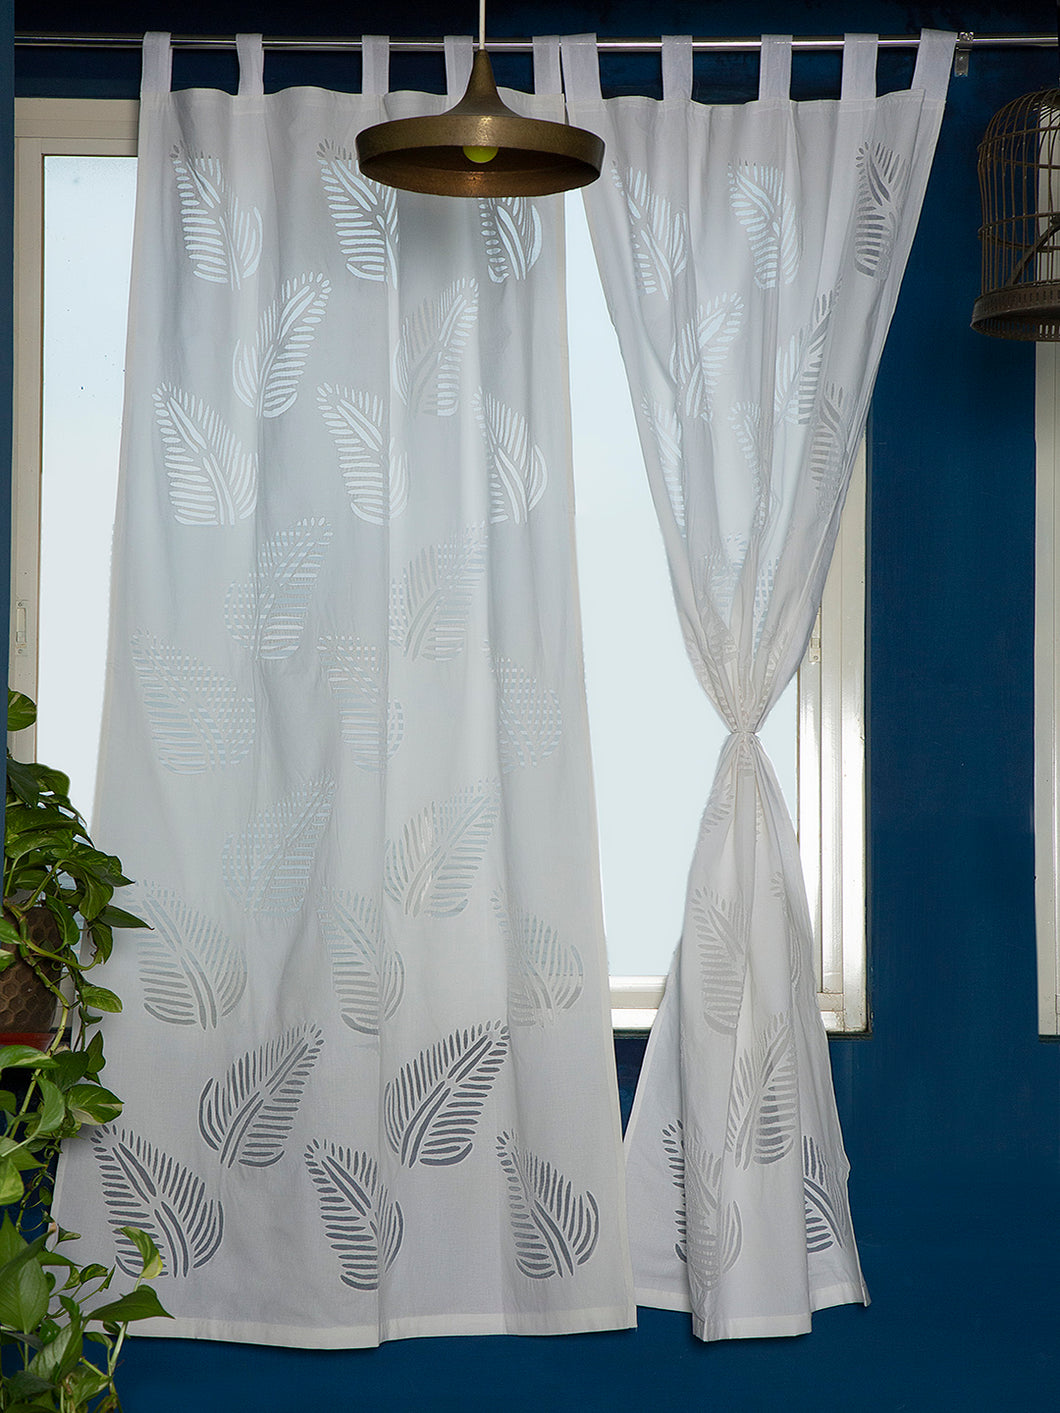 Applique, Handmade Curtains for Door/Window, Leaf Pattern, White